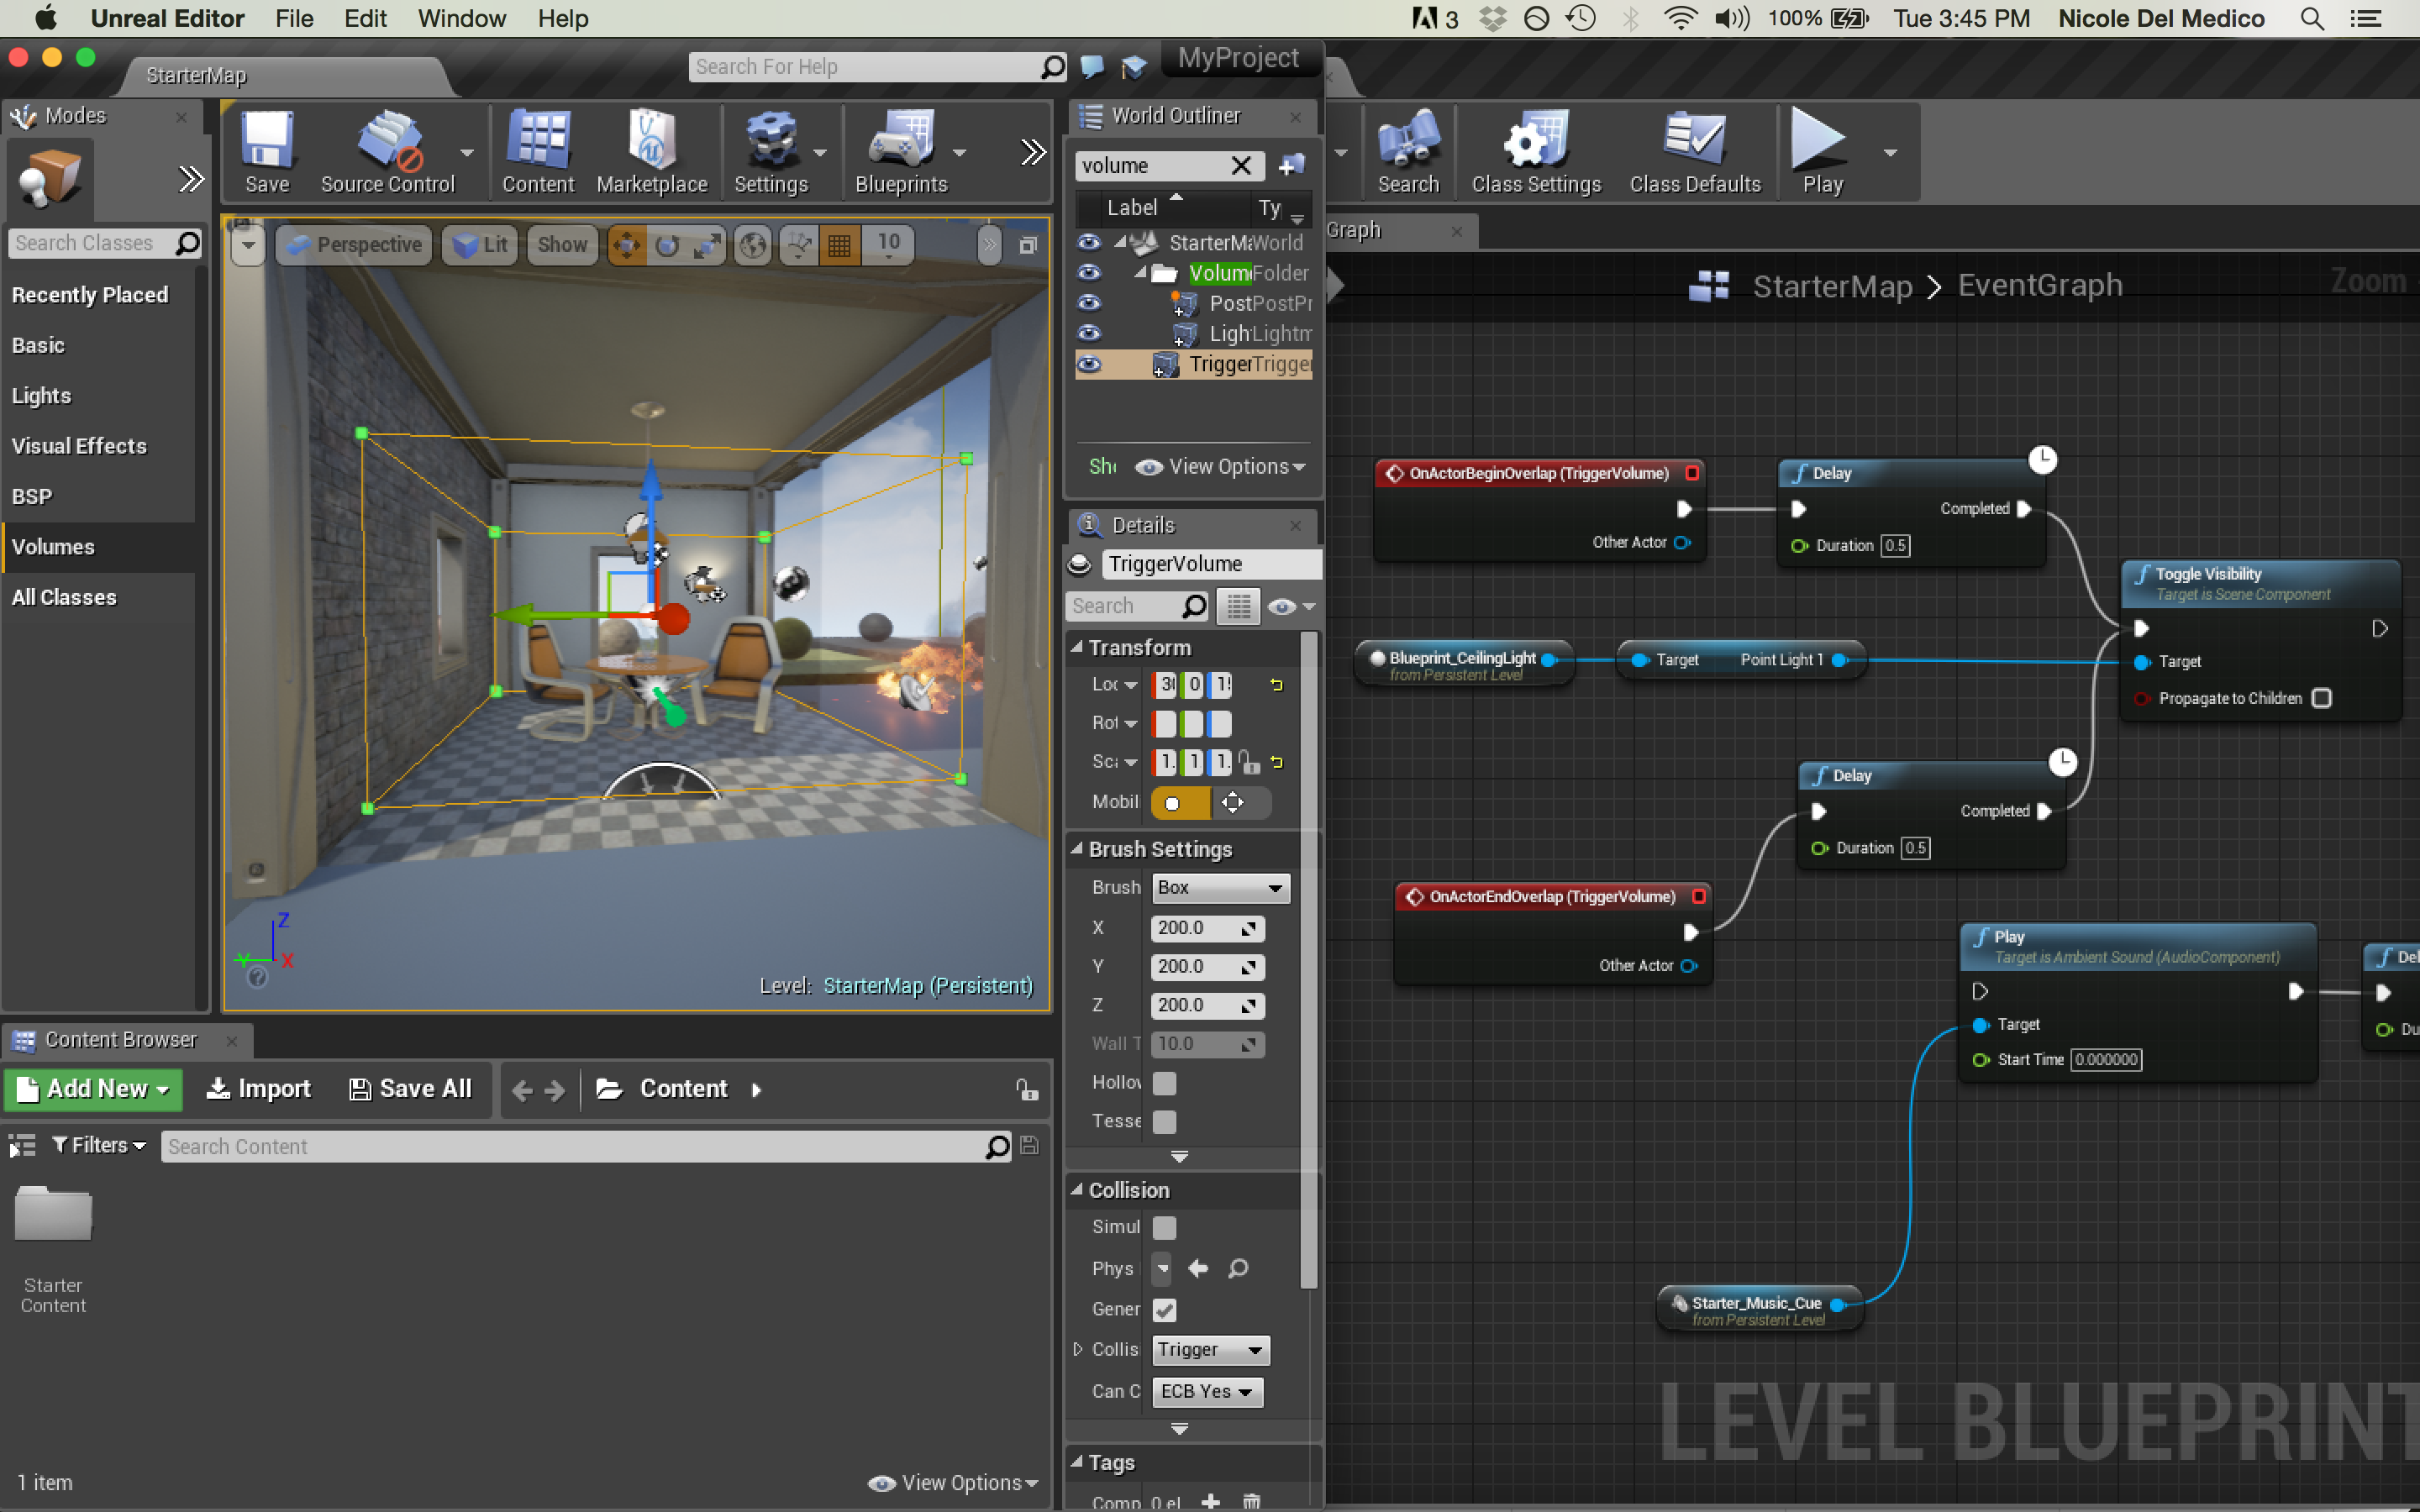 Ue4 blueprint tutorials level blueprints nicole del medicos screen shot 2015 10 06 at 34515 pm malvernweather